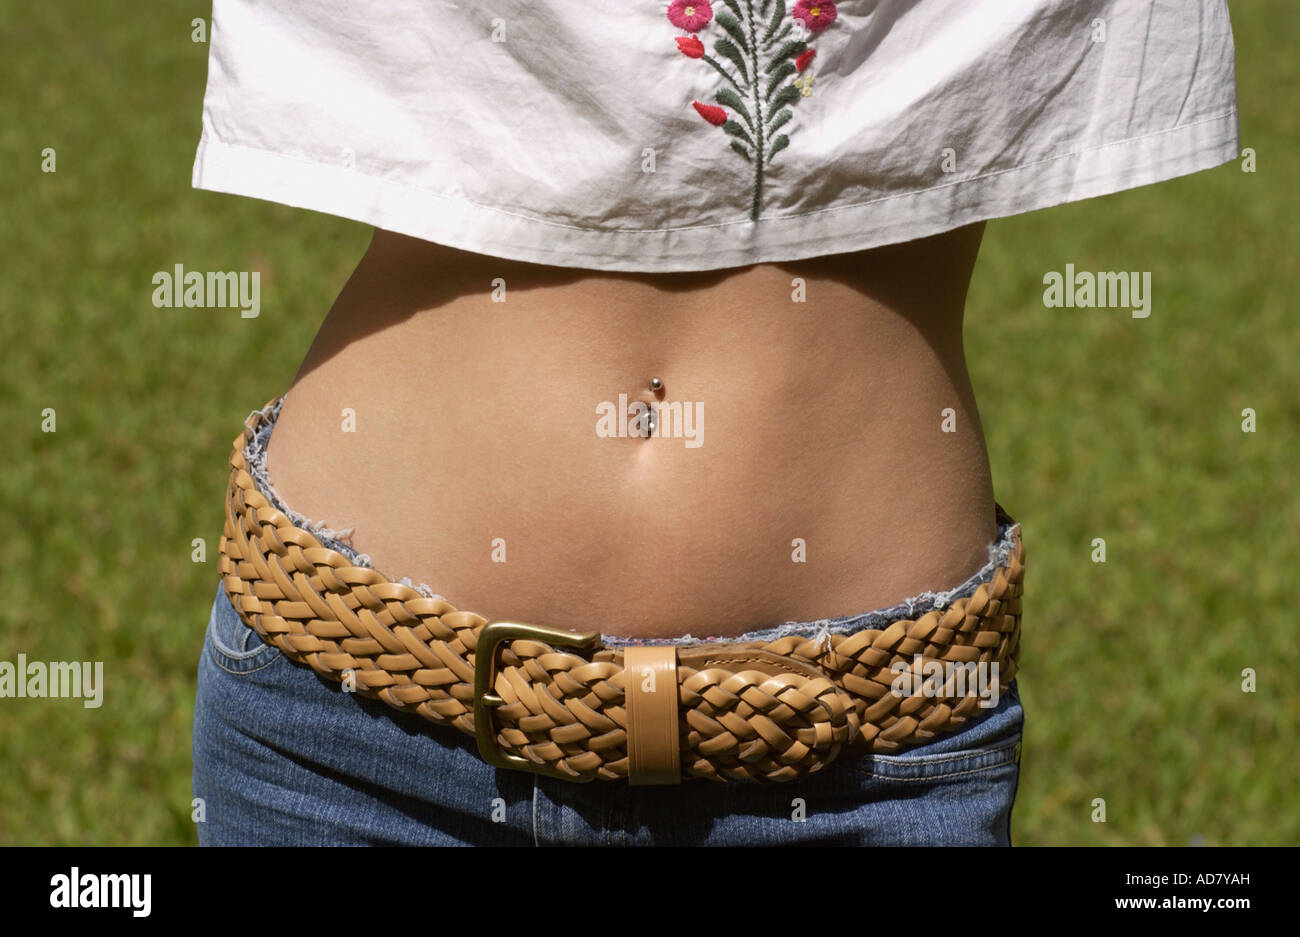 07ec9c51a6f92 Woman shows her bare midriff with a belly button ring while wearing a white  shirt and jeans